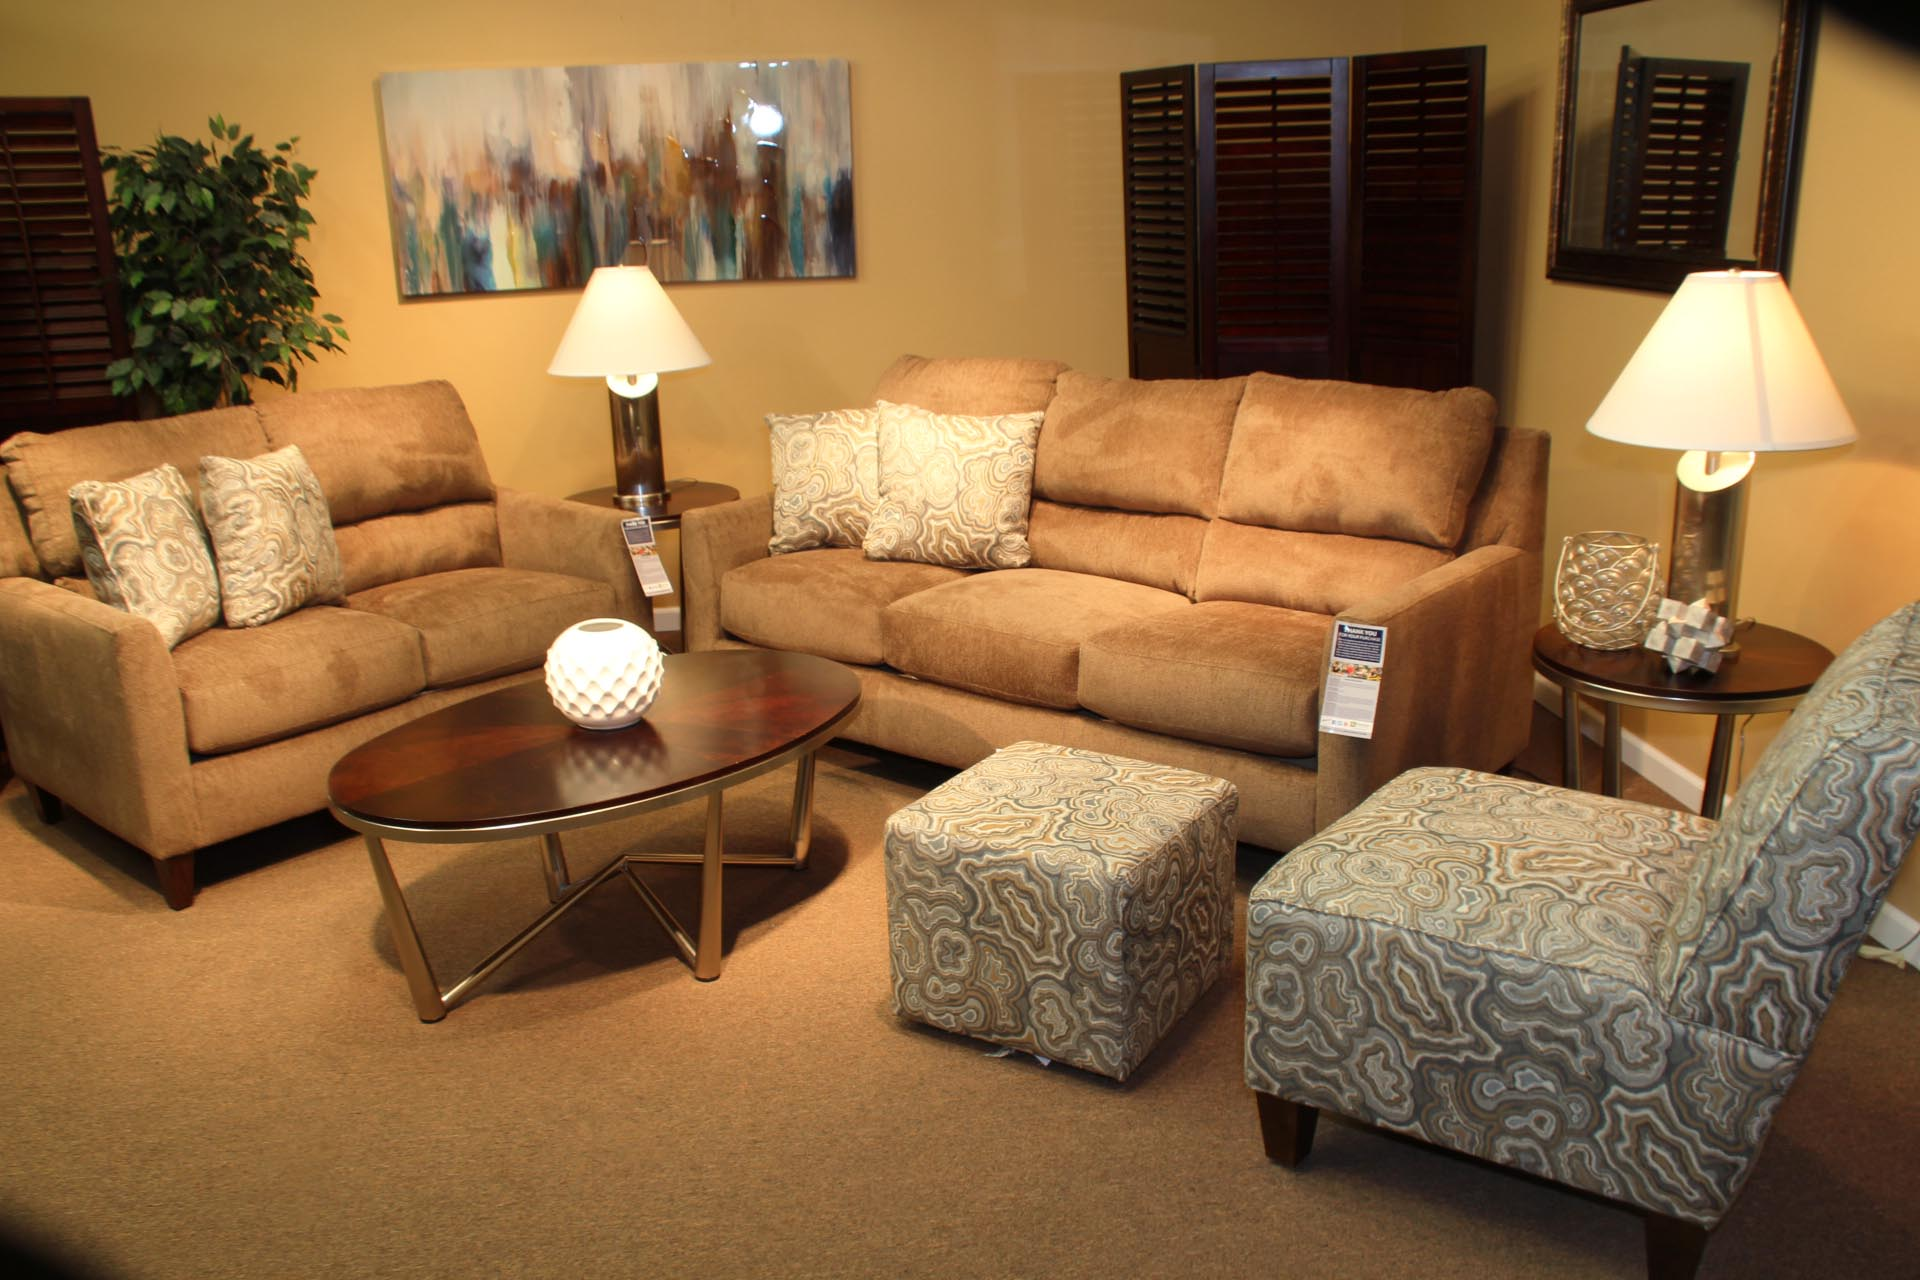 Pittsburgh Furniture living room set example 2